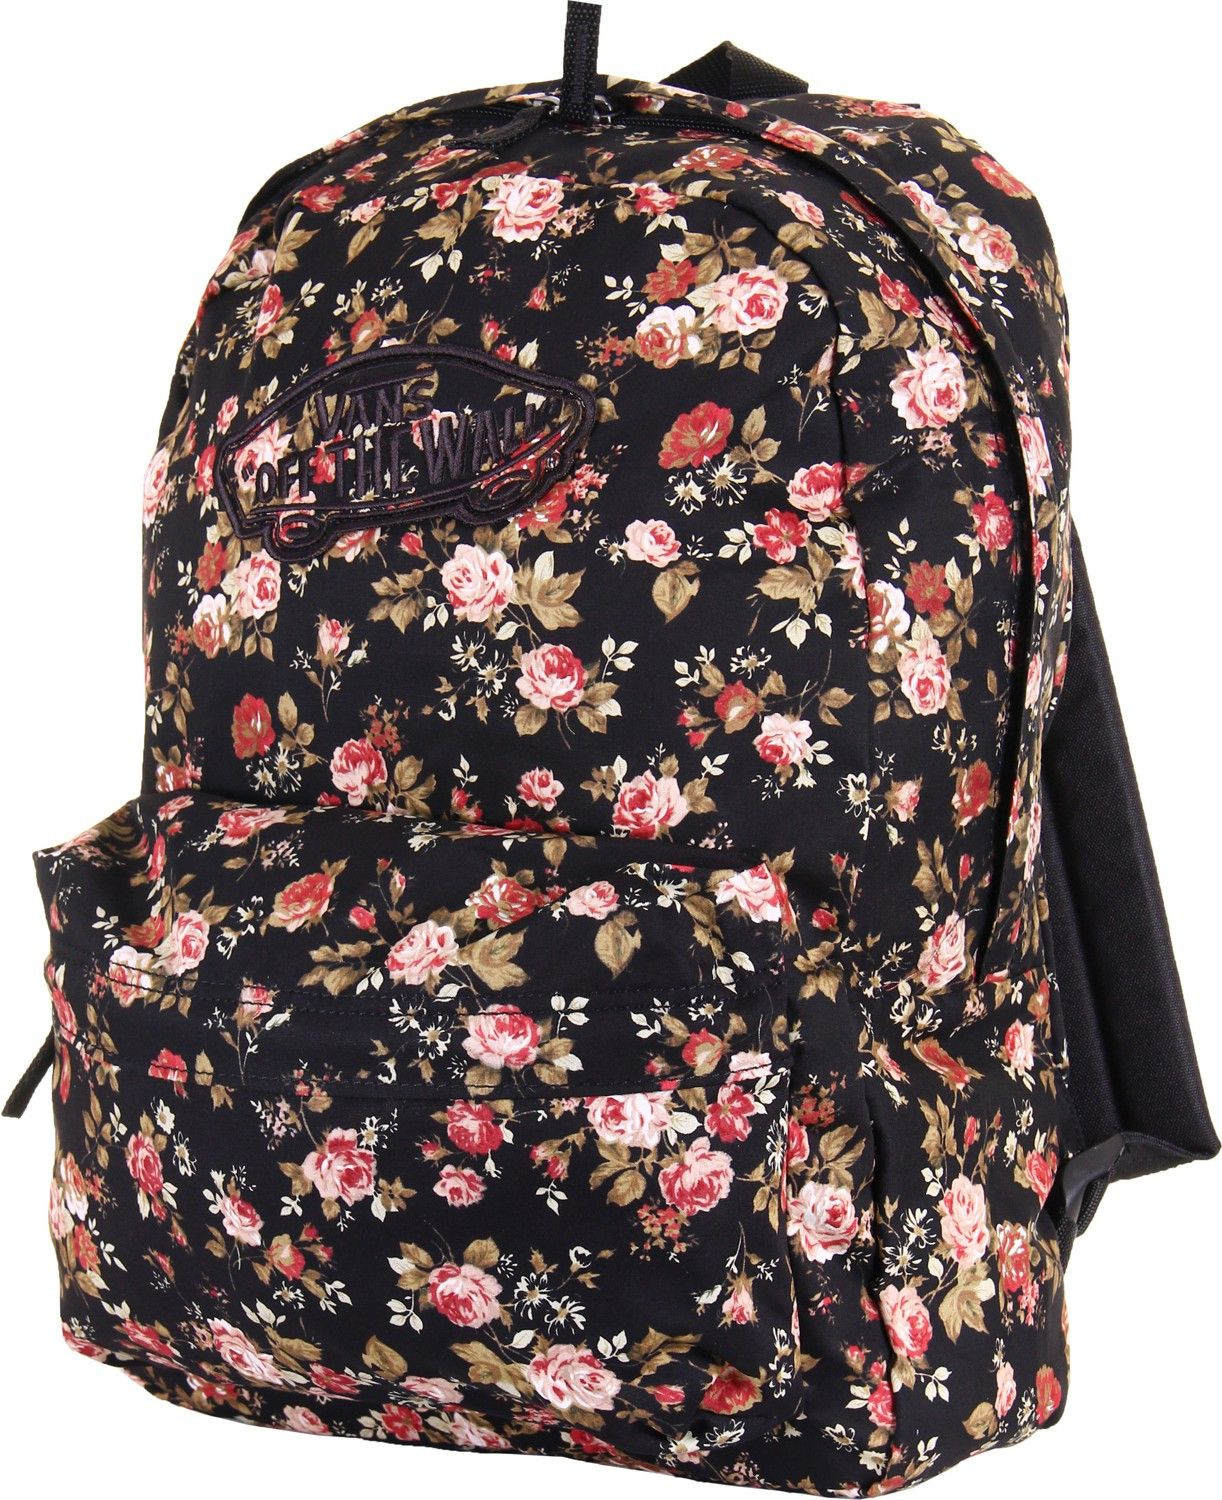 8c89ce6c1a3 Buy vans female backpack   OFF46% Discounts